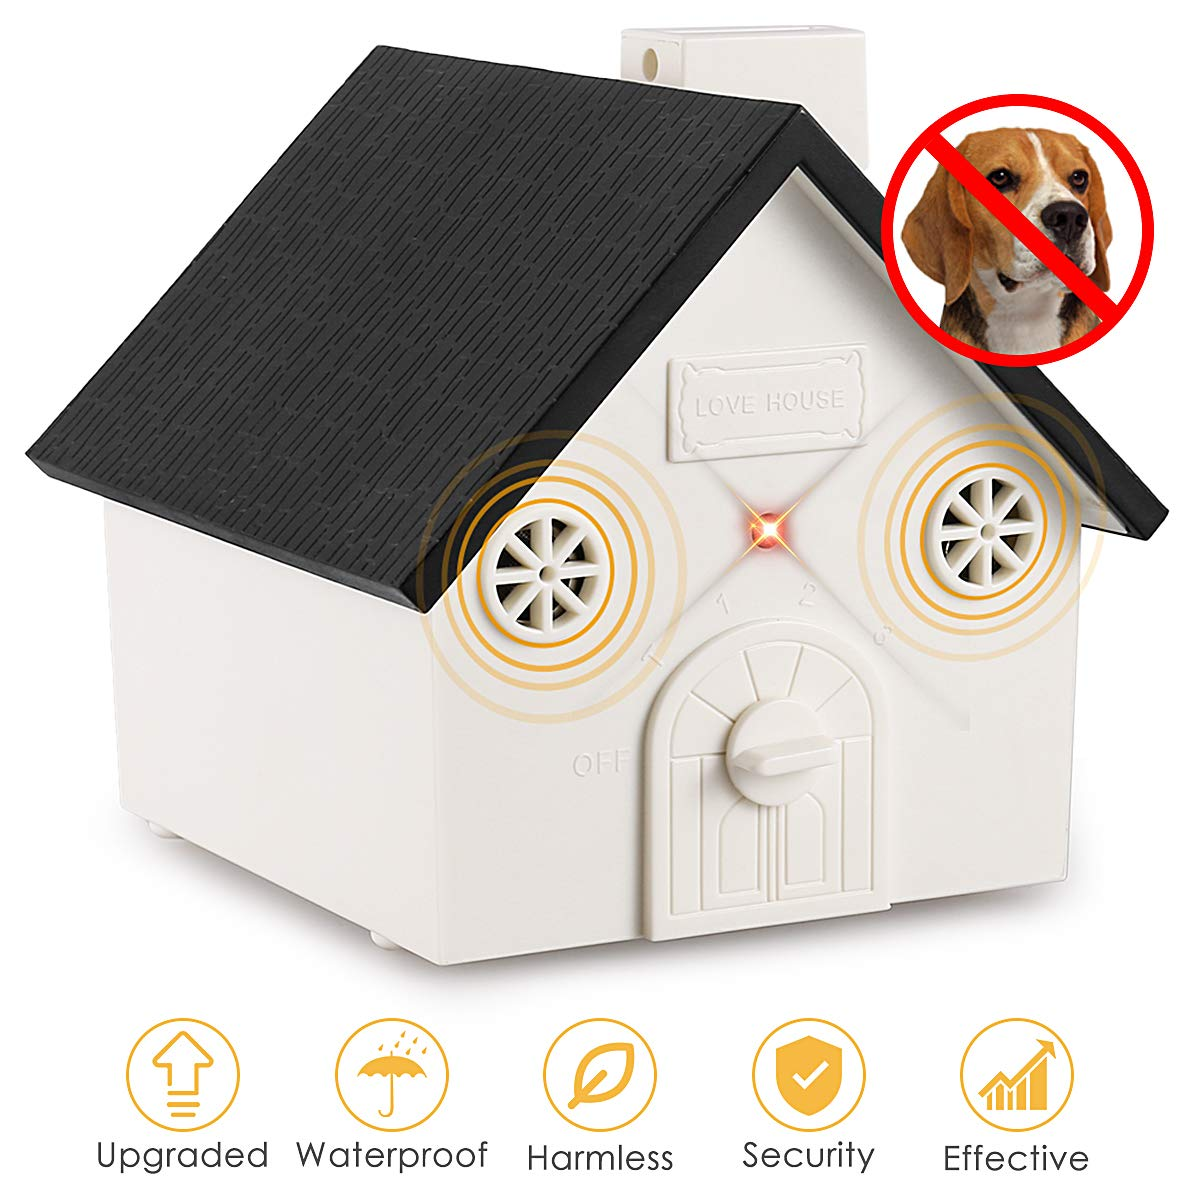 Humutan Anti Barking Device, 2019 New Bark Box Outdoor Dog Repellent Device with Adjustable Ultrasonic Level Control Safe for Small Medium Large Dogs, Sonic Bark Deterrents, Bark Control Device by ELenest